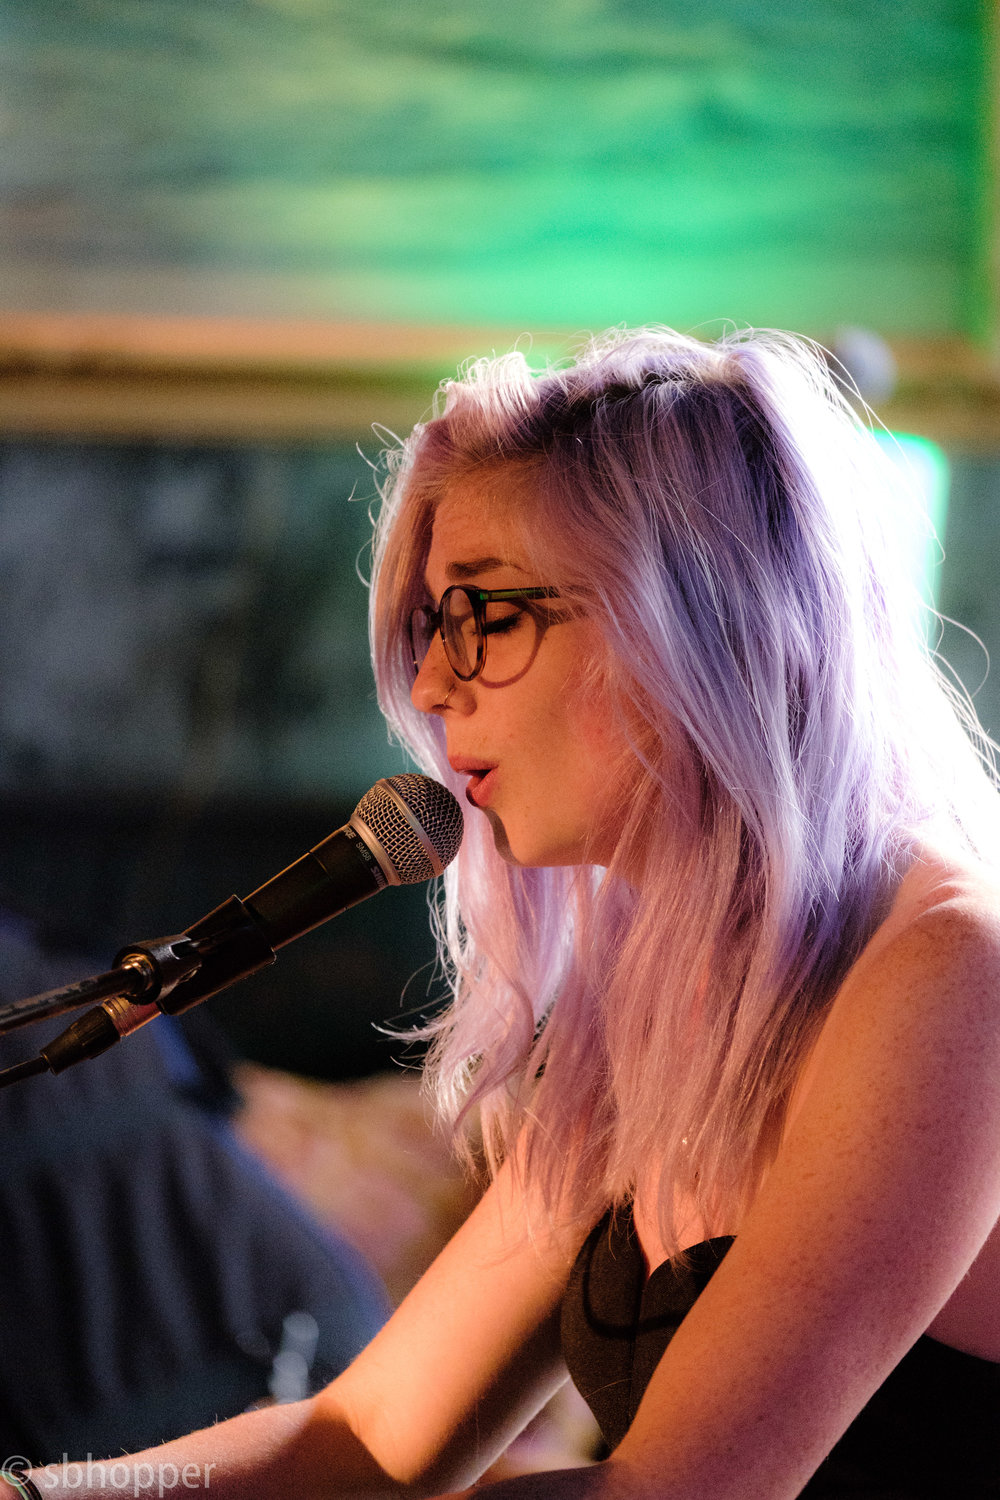 Anna St. Lee at Chop Suey, Capitol Hill, Seattle, 10 July 2017.